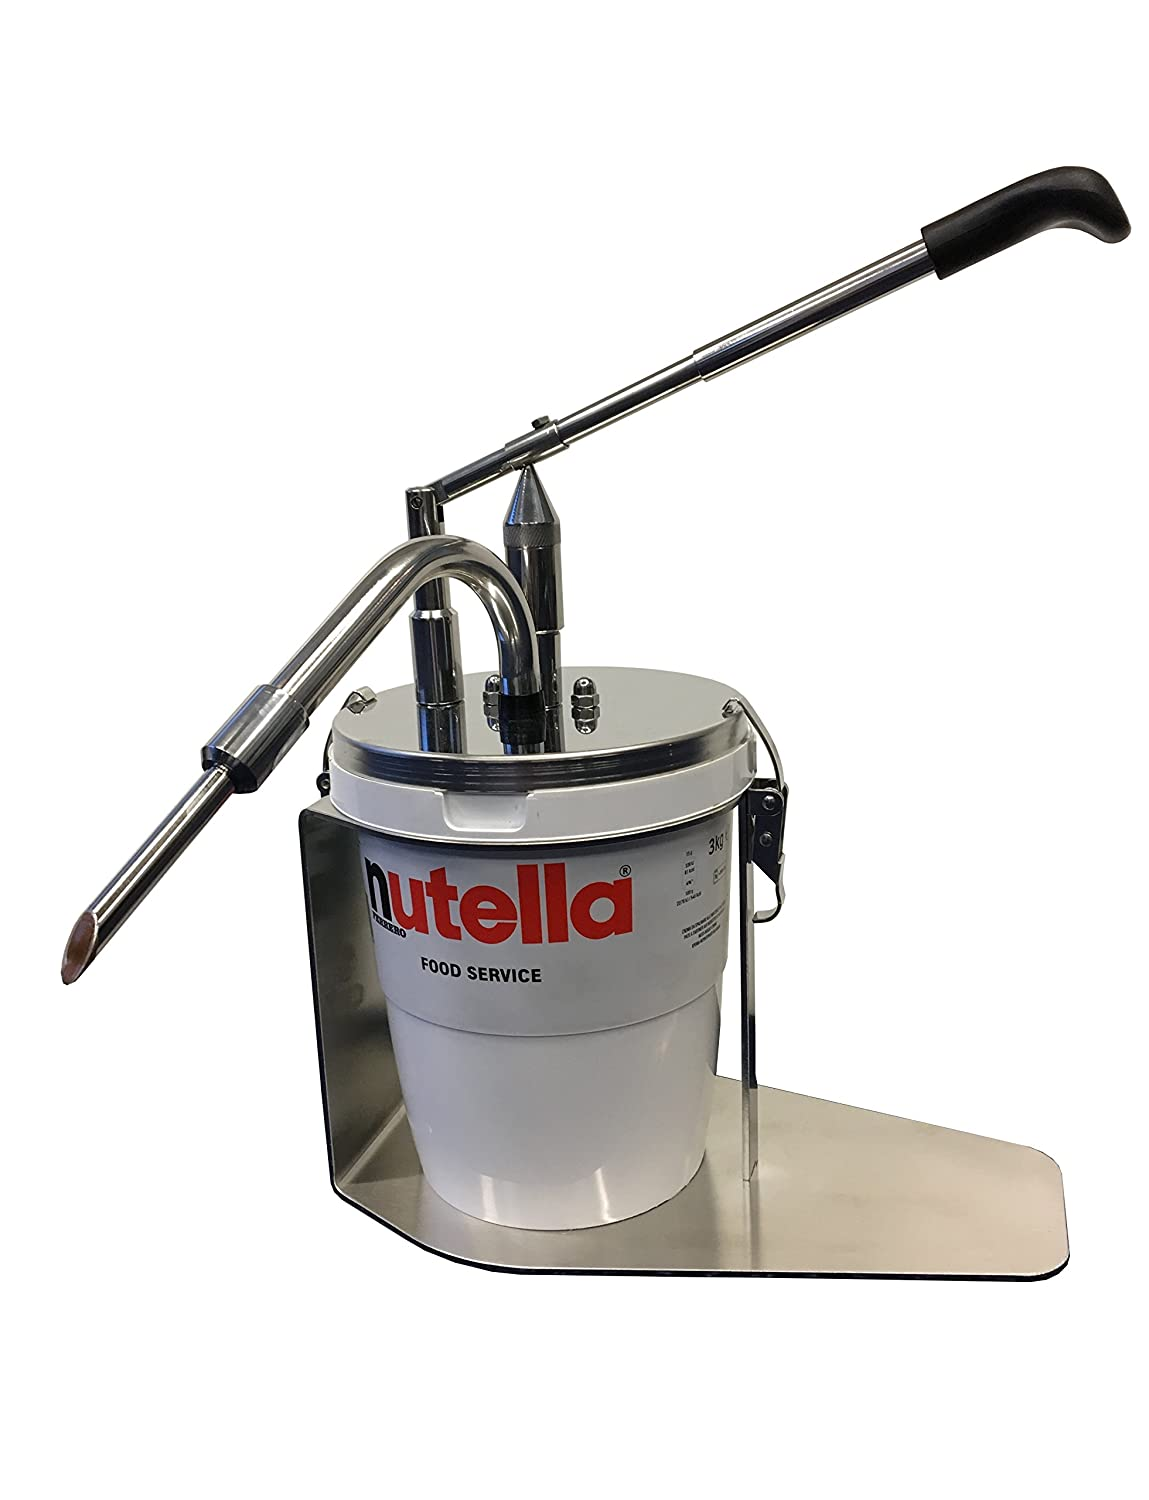 Amazon.com: Nutella compatible dispenser by ChocoPump - mess free dispenser for Nutella foodservice 3kg tub: Kitchen & Dining